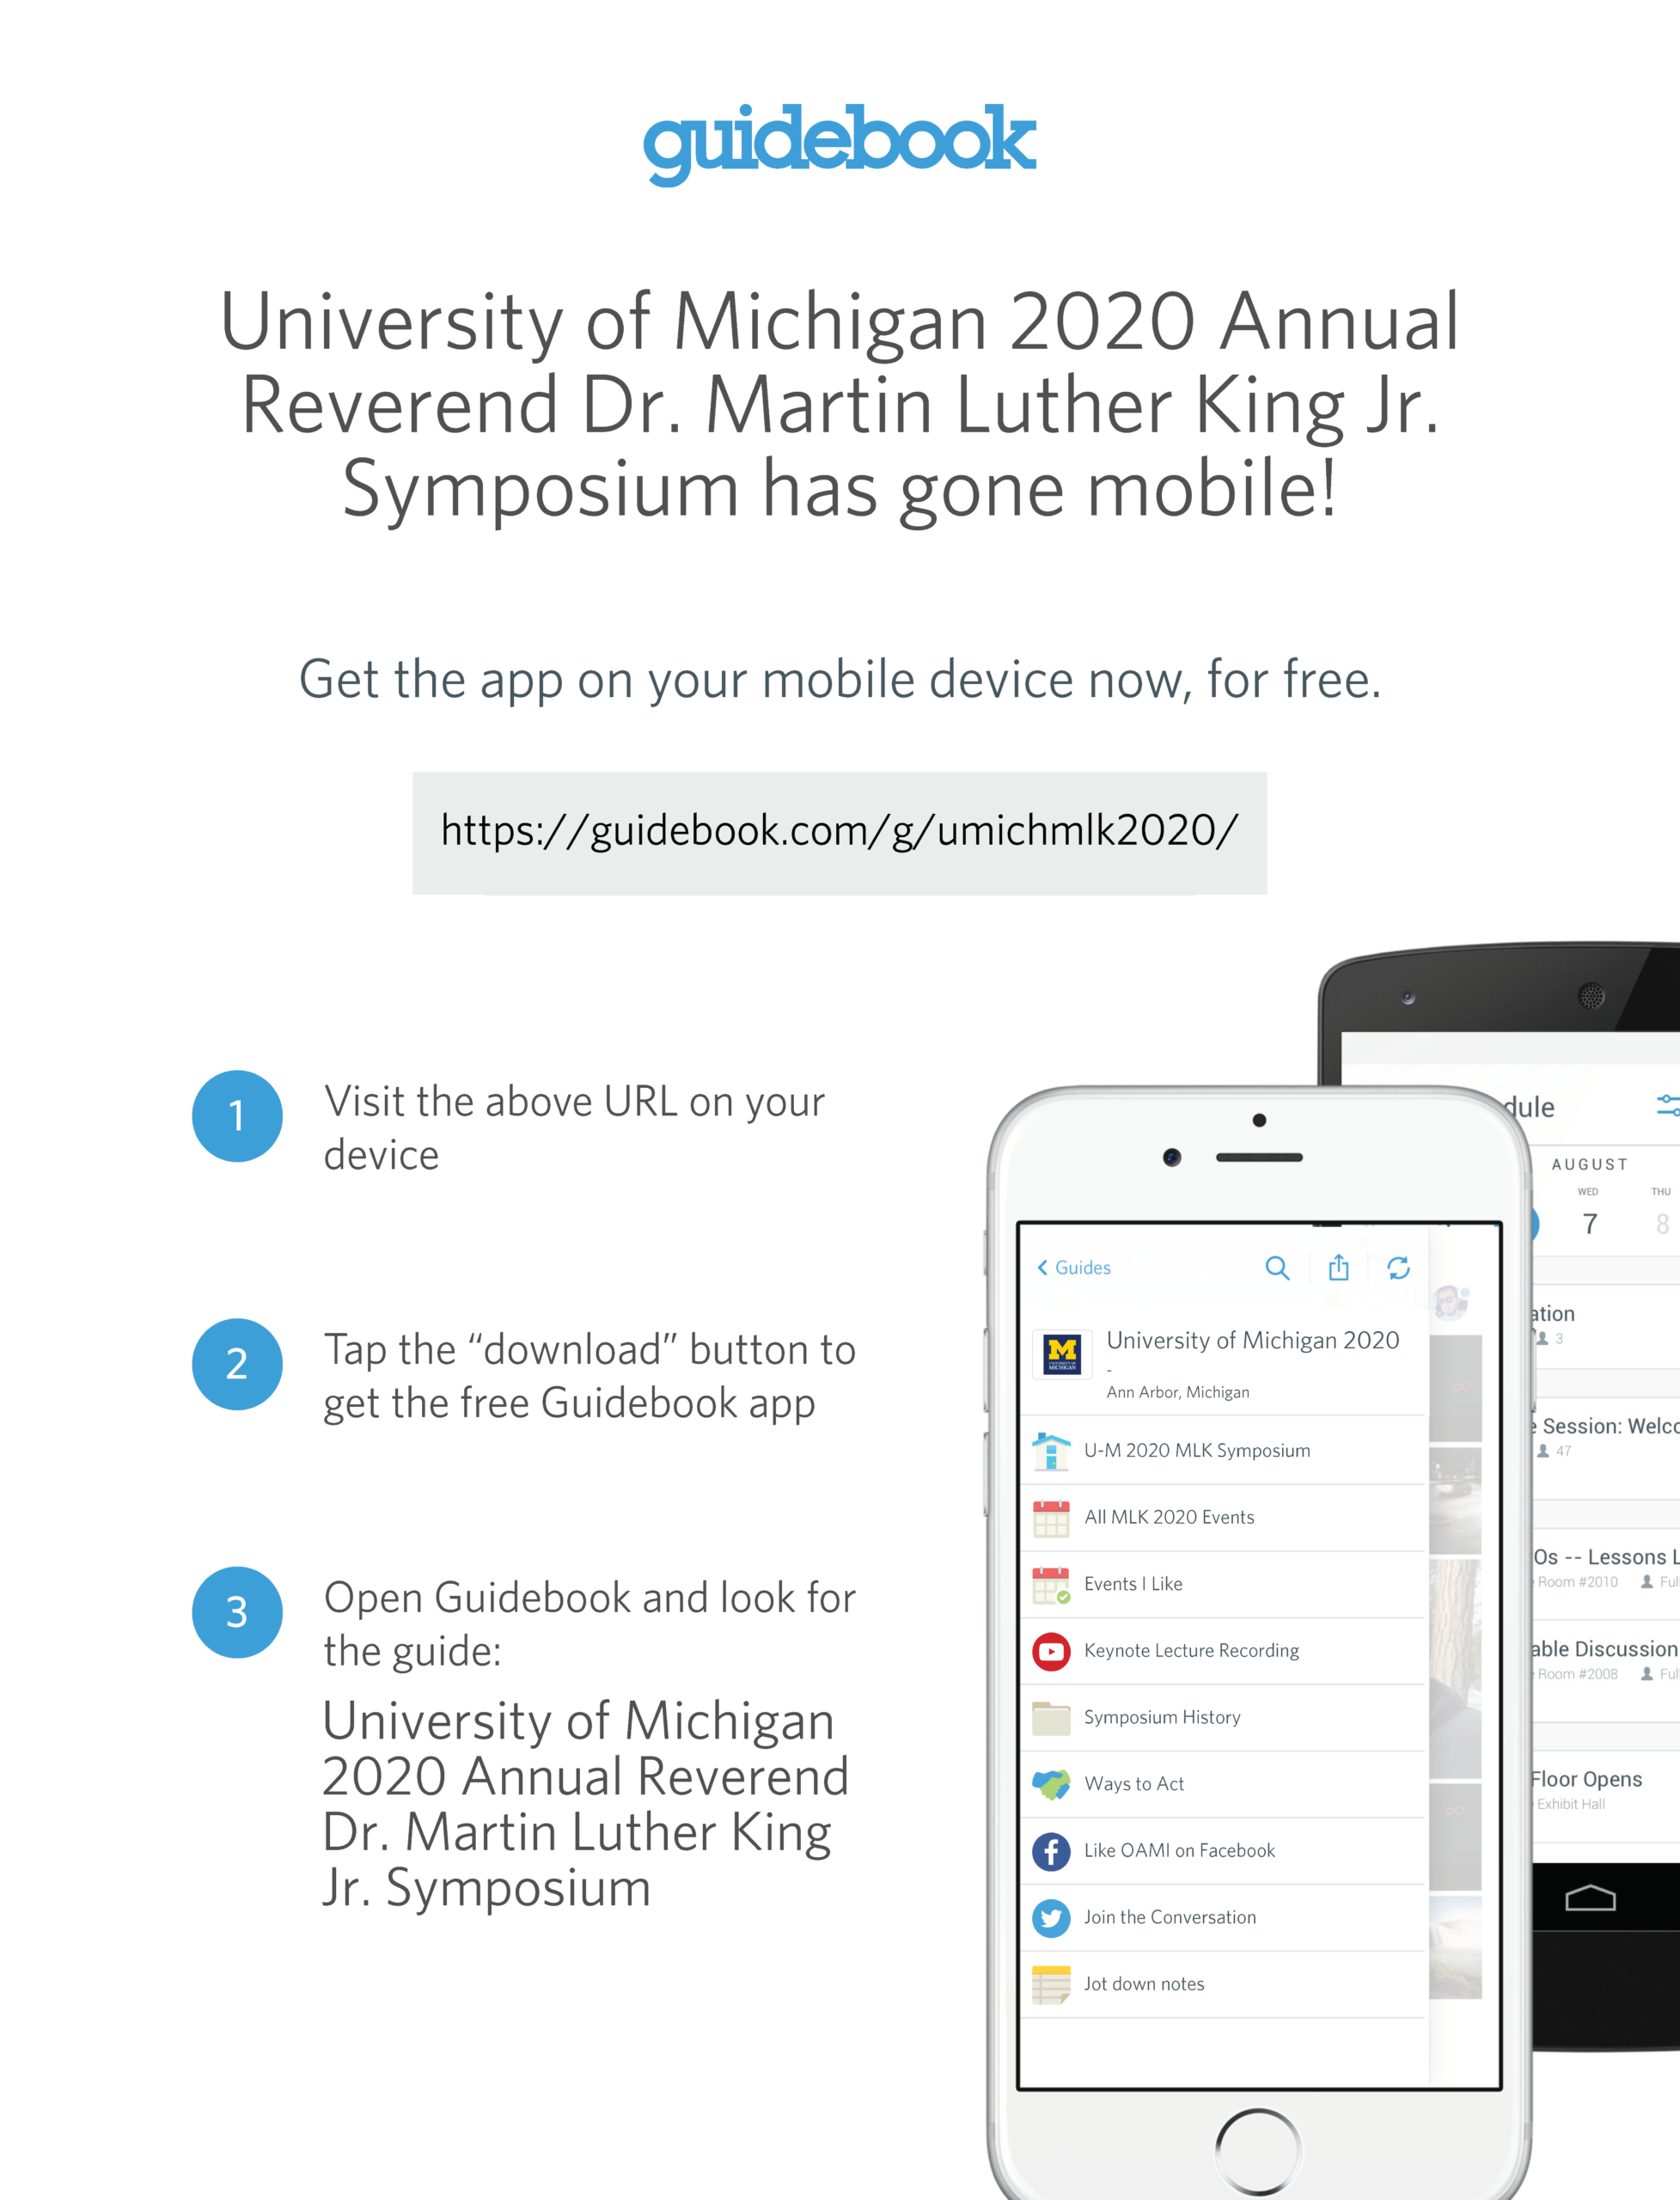 University of Michigan 2020 Annual Reverend Dr. Martin Luther King Jr. Symposium has gone mobile! Get the app on your mobile device now, for free. https://guidebook.com/g/umichmlk2020/